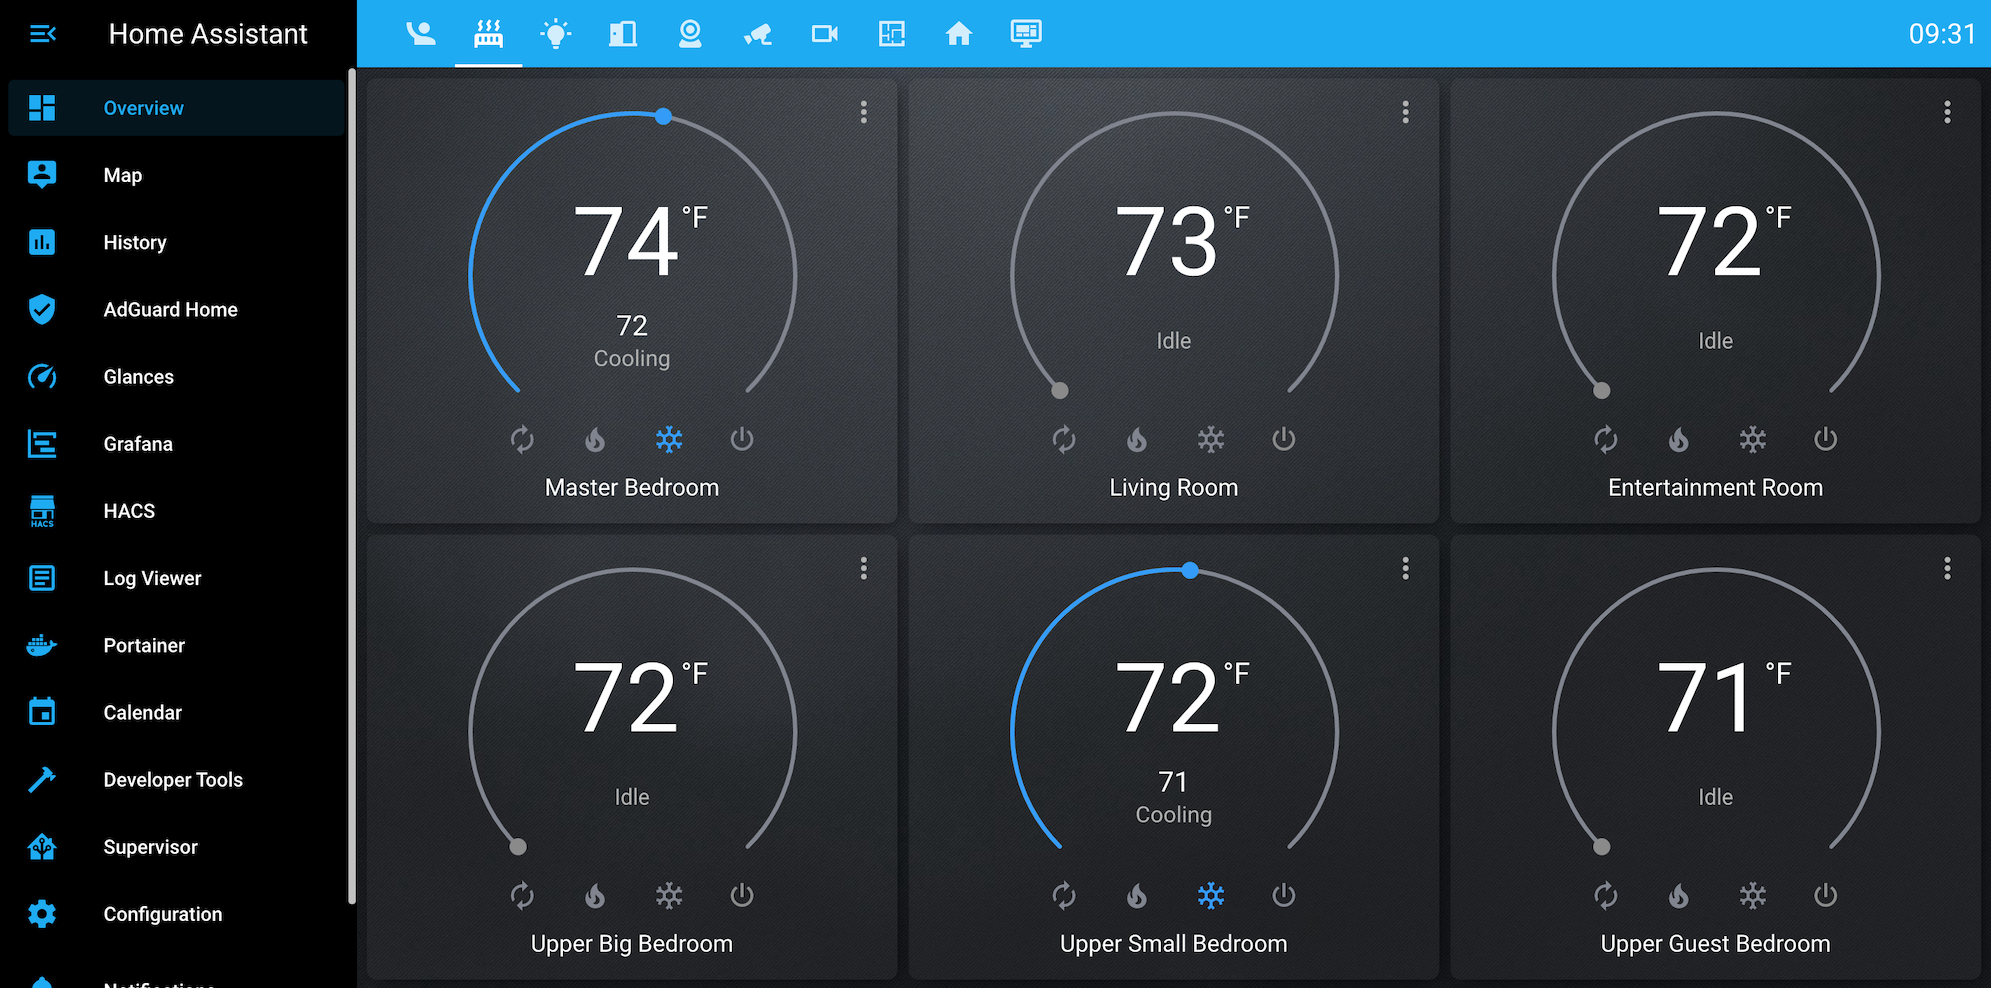 Home Assistant dashboard